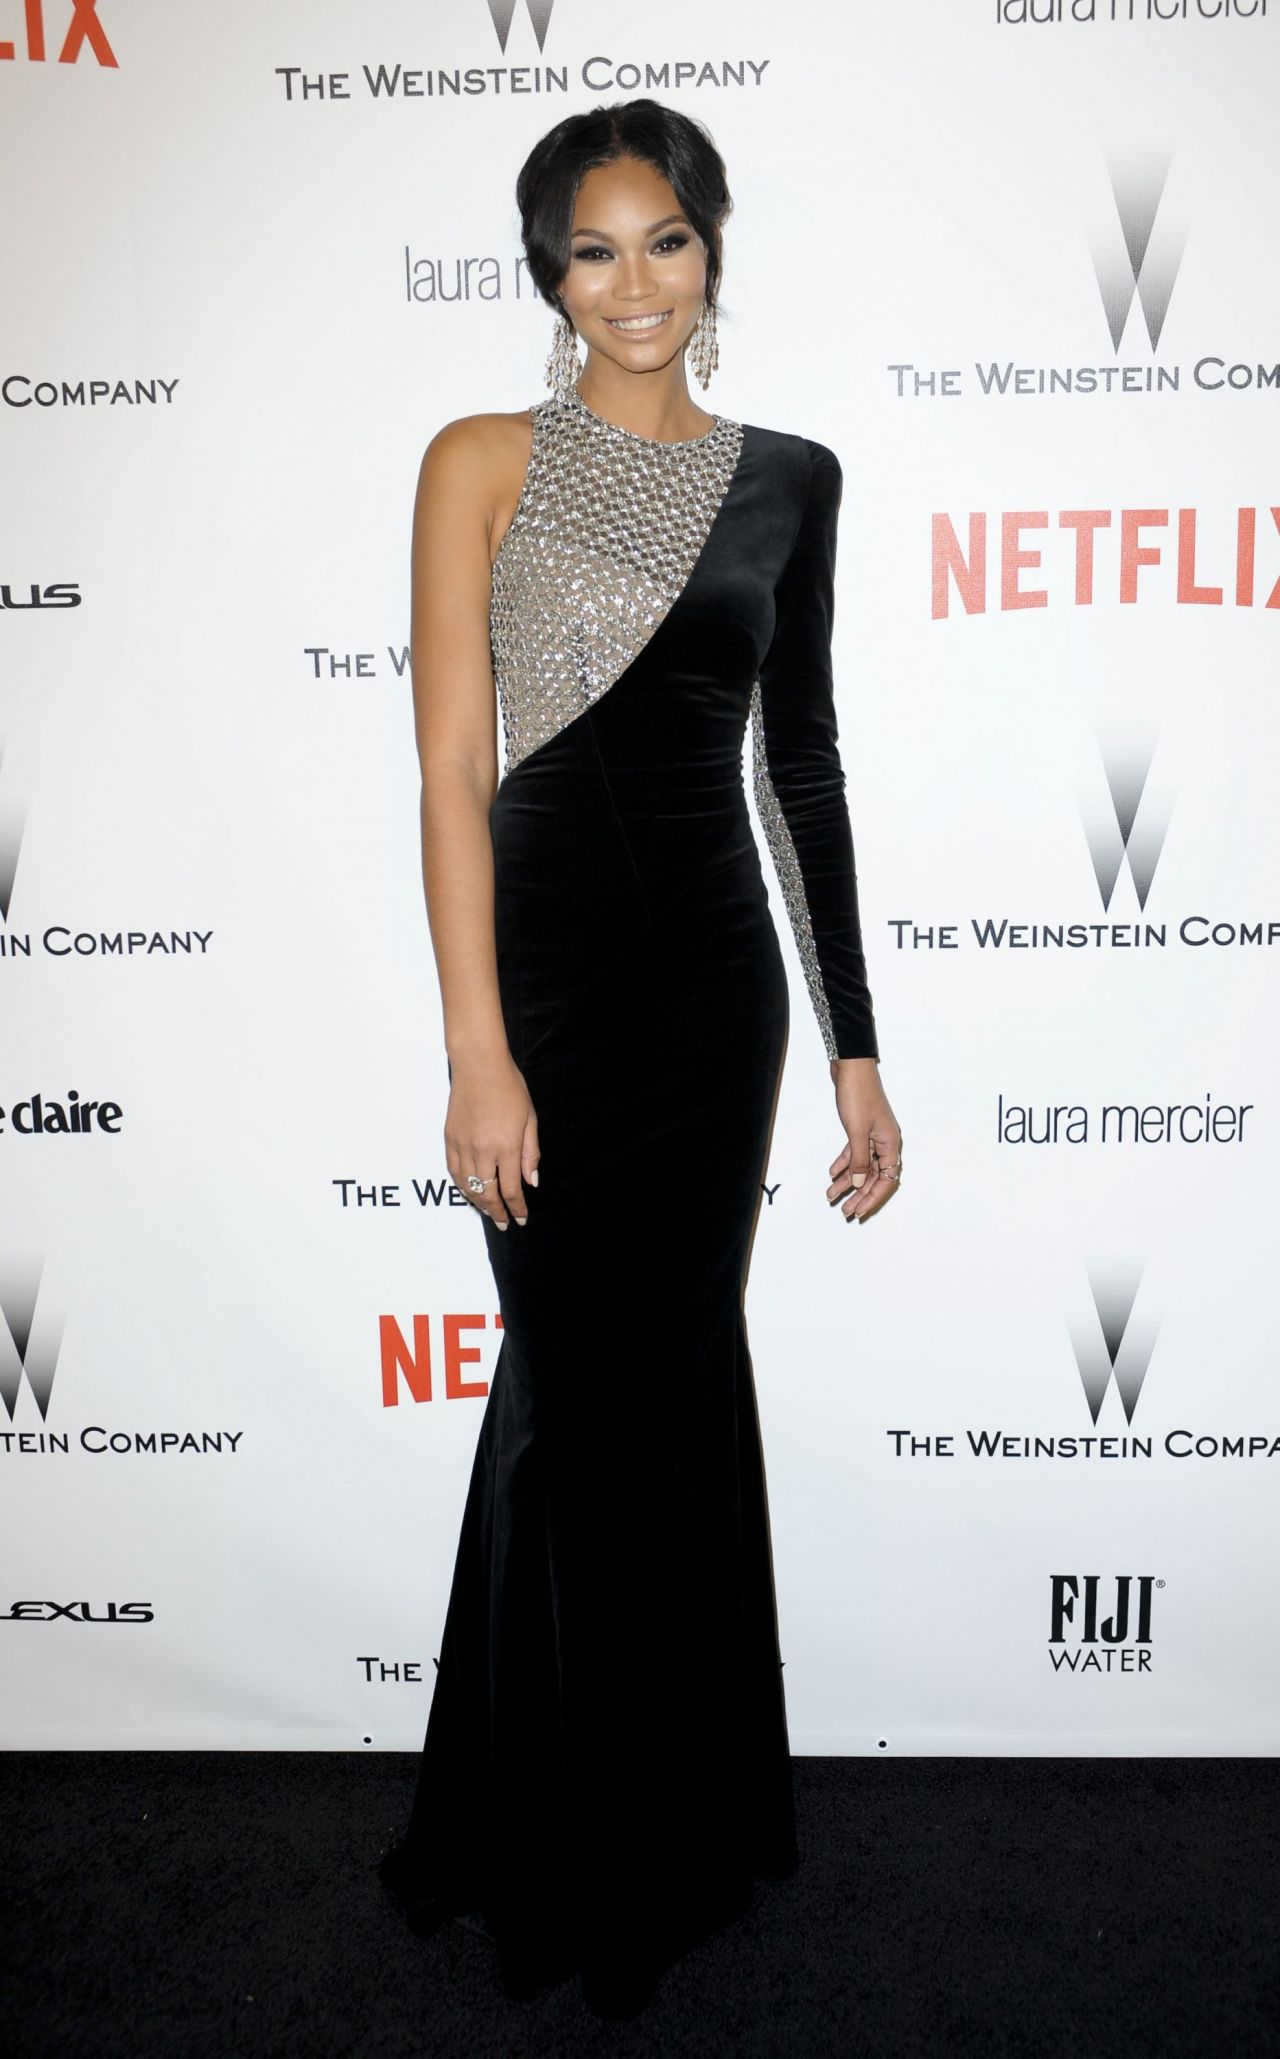 Chanel Iman - The Weinstein Company & Netflix